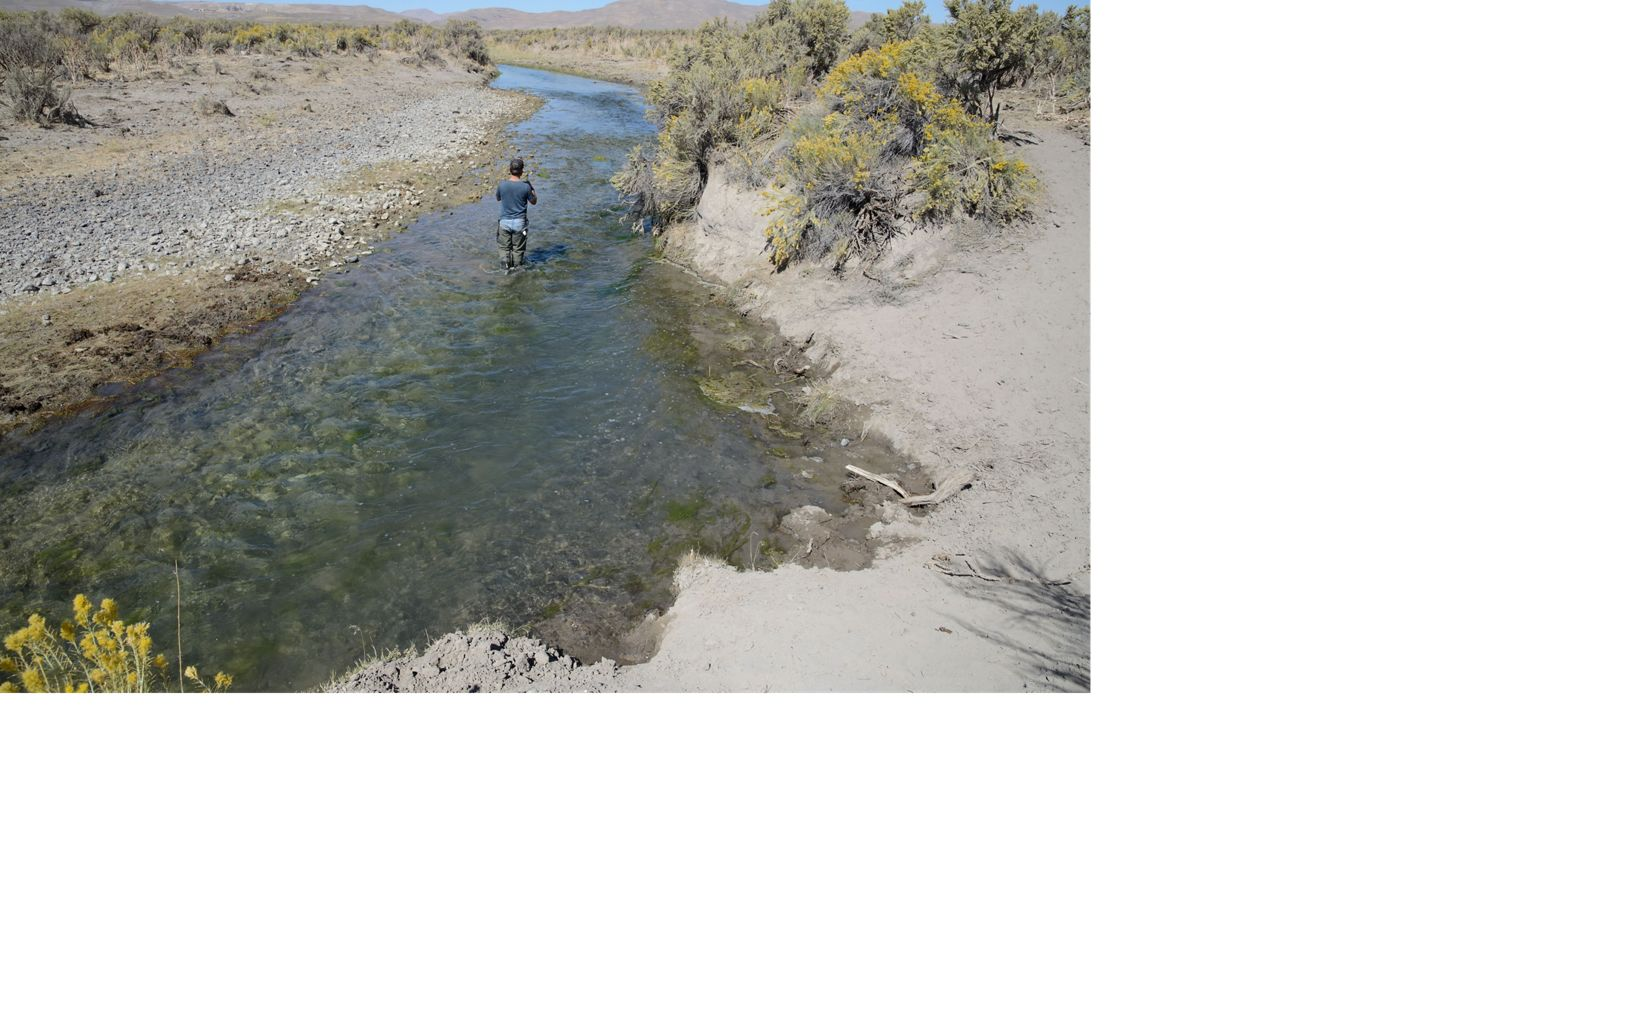 Perennial streams like Maggie Creek flow year-round because of groundwater inputs.